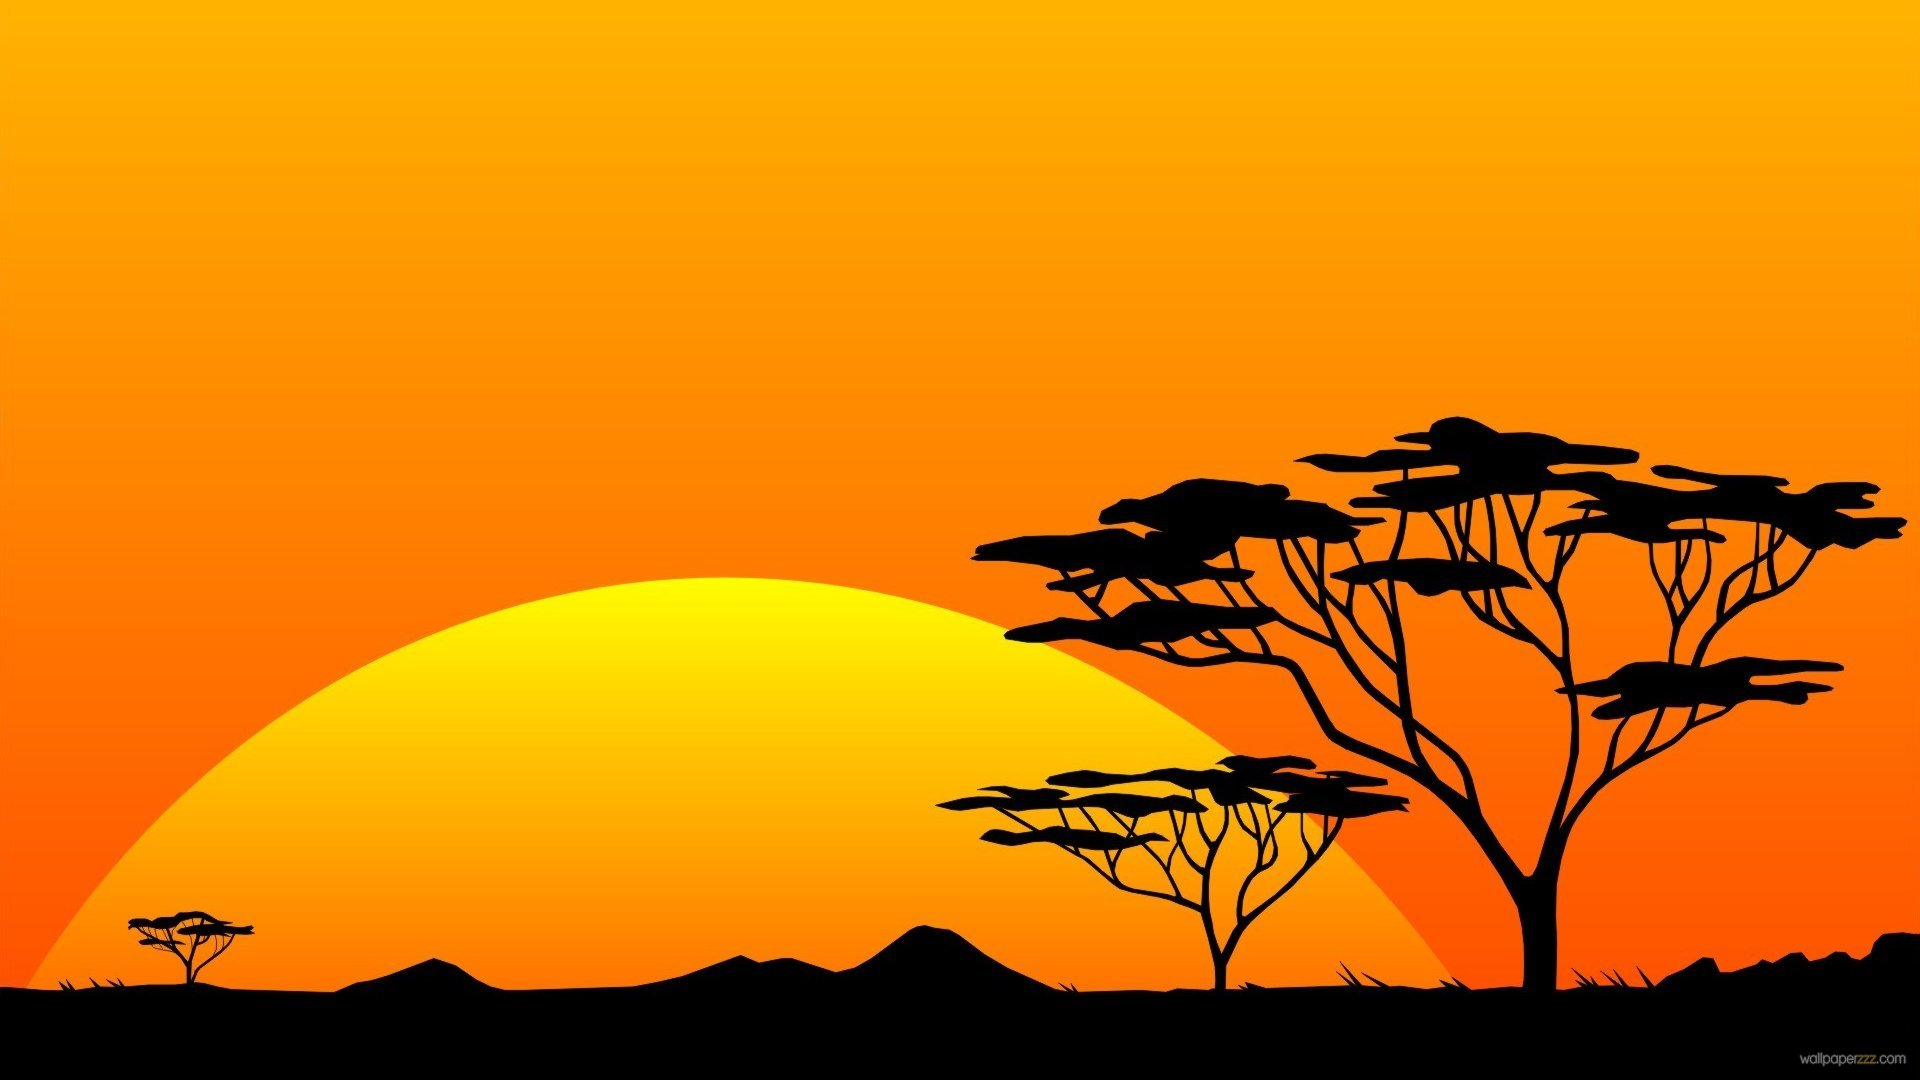 Africa 39061186 Wallpaper for Free | Top 100% Quality HD Photos